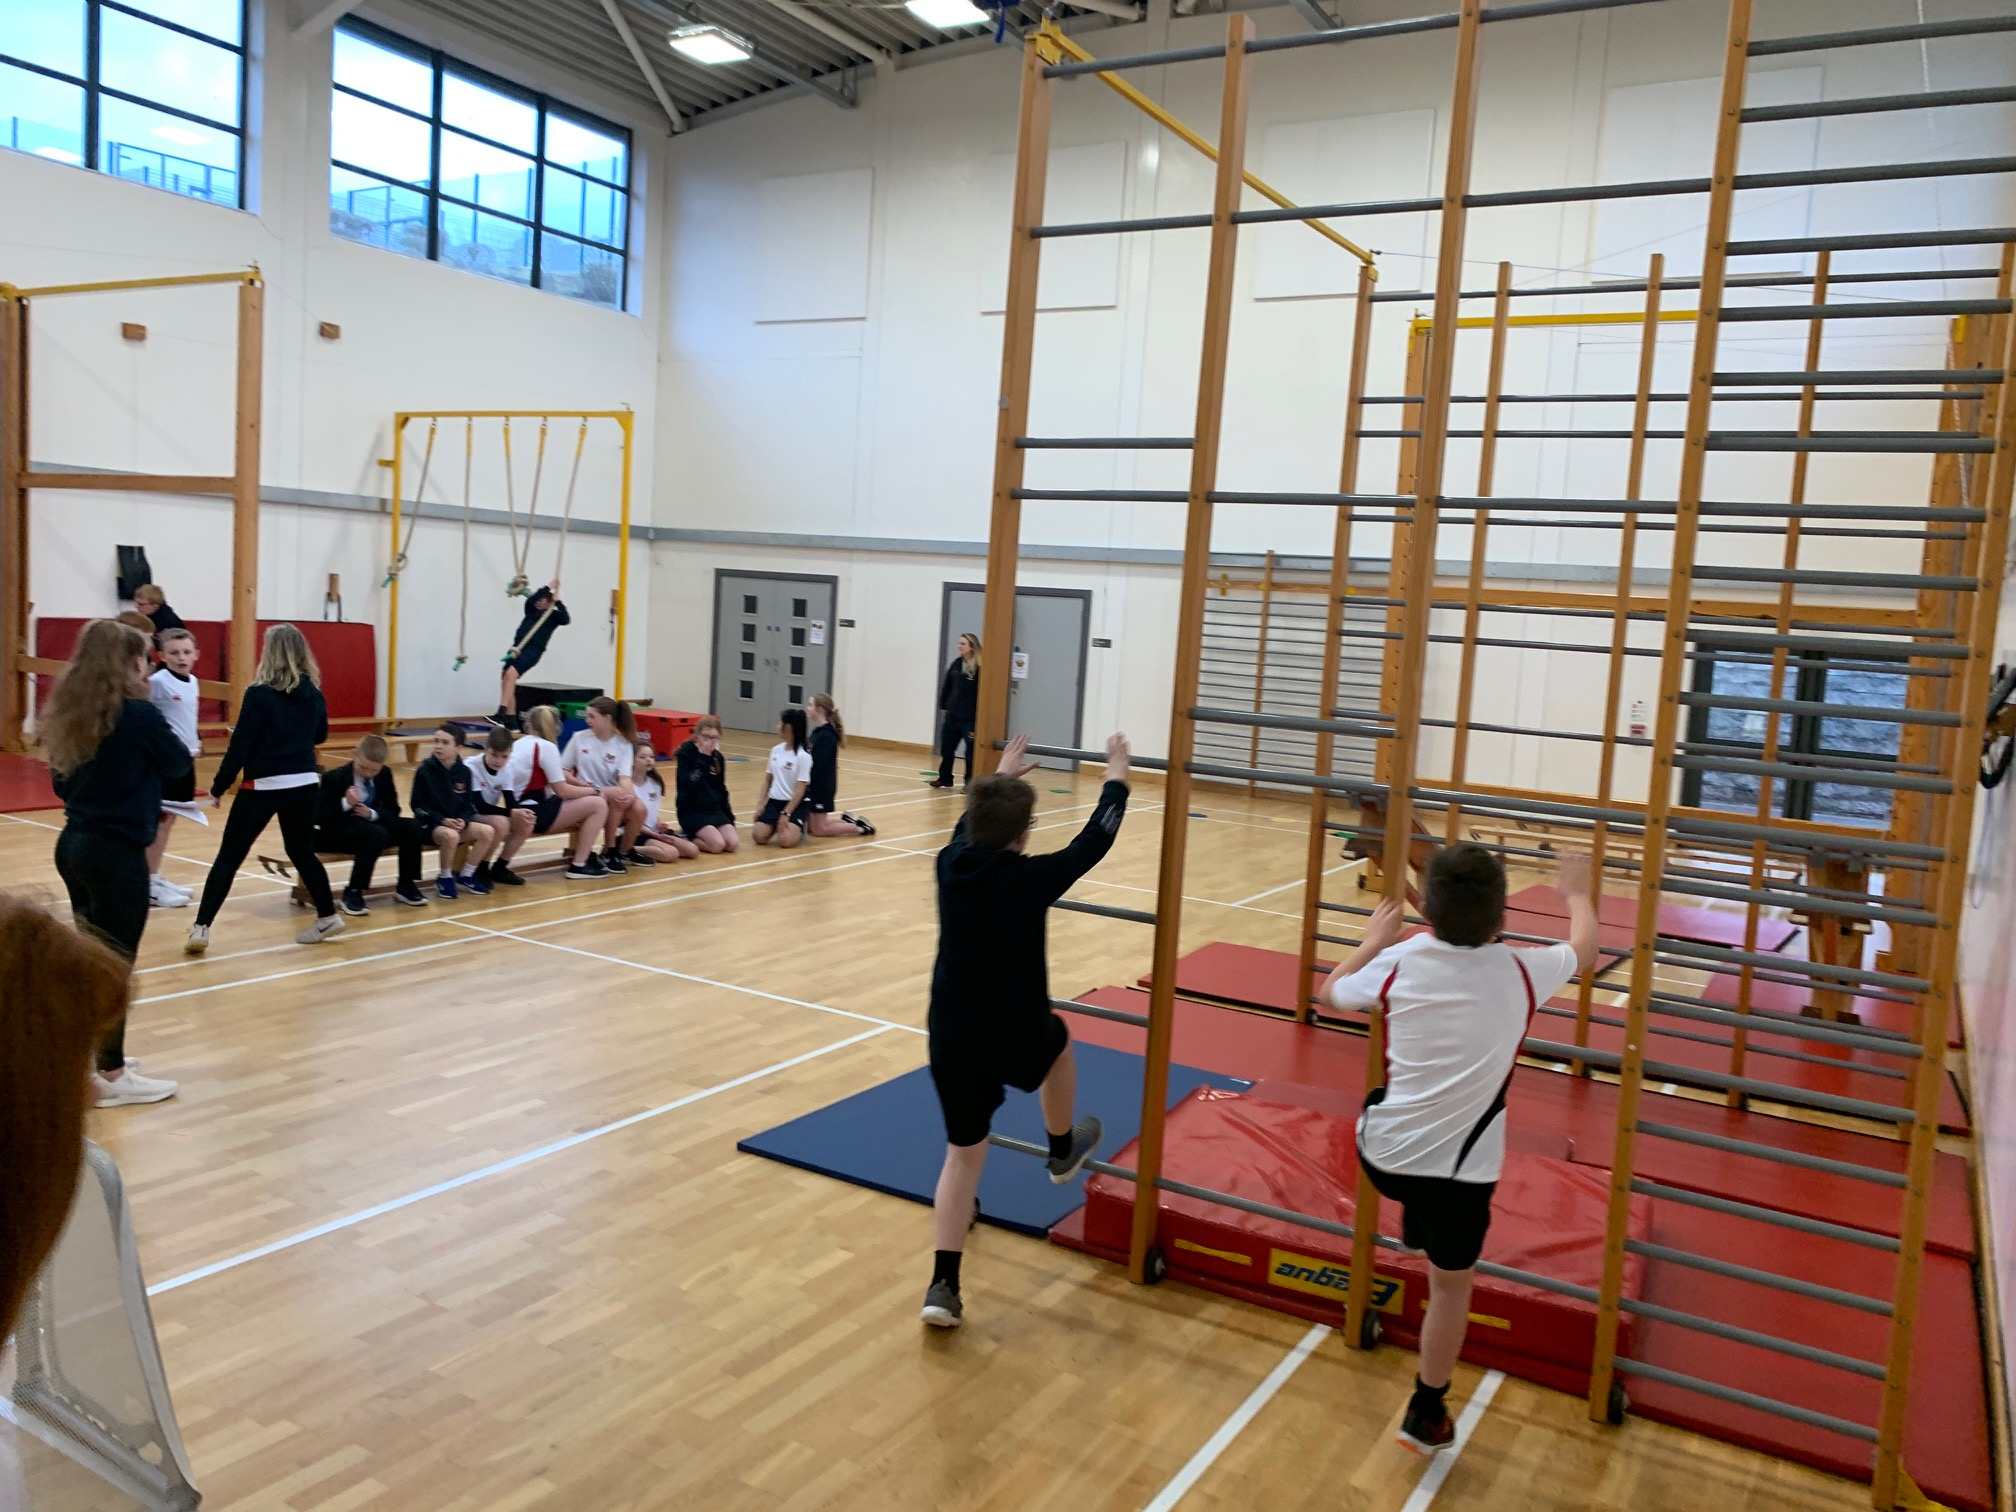 People in a school gym climbing up the apparatus